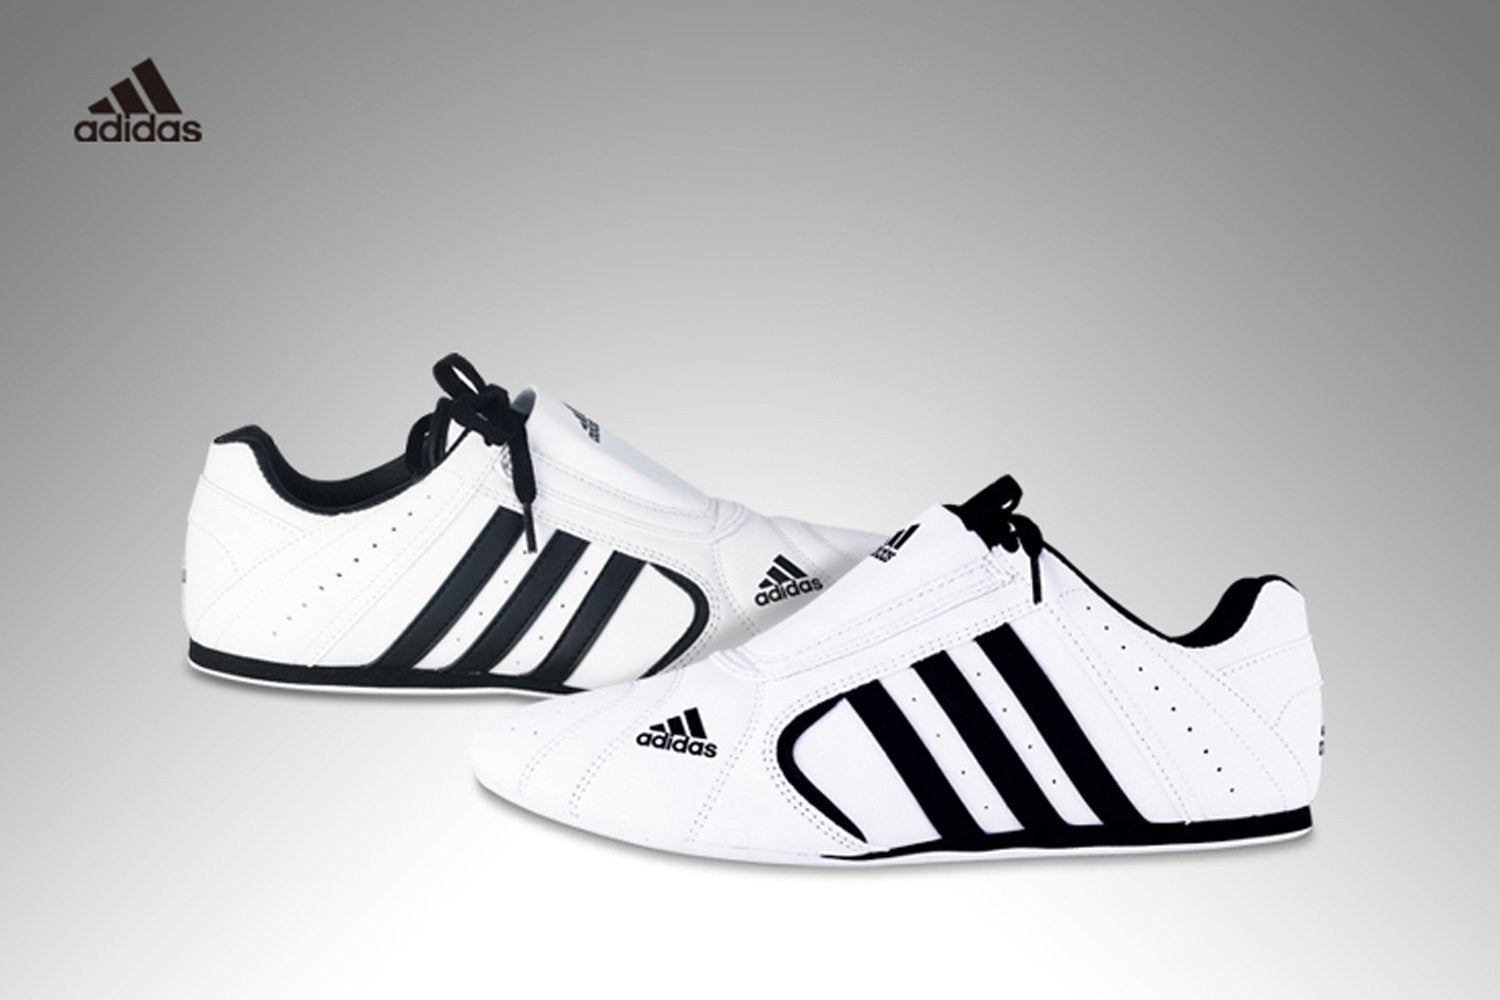 b077a766c607 Adidas Adi SM III Training Shoes White Shoes & Bags